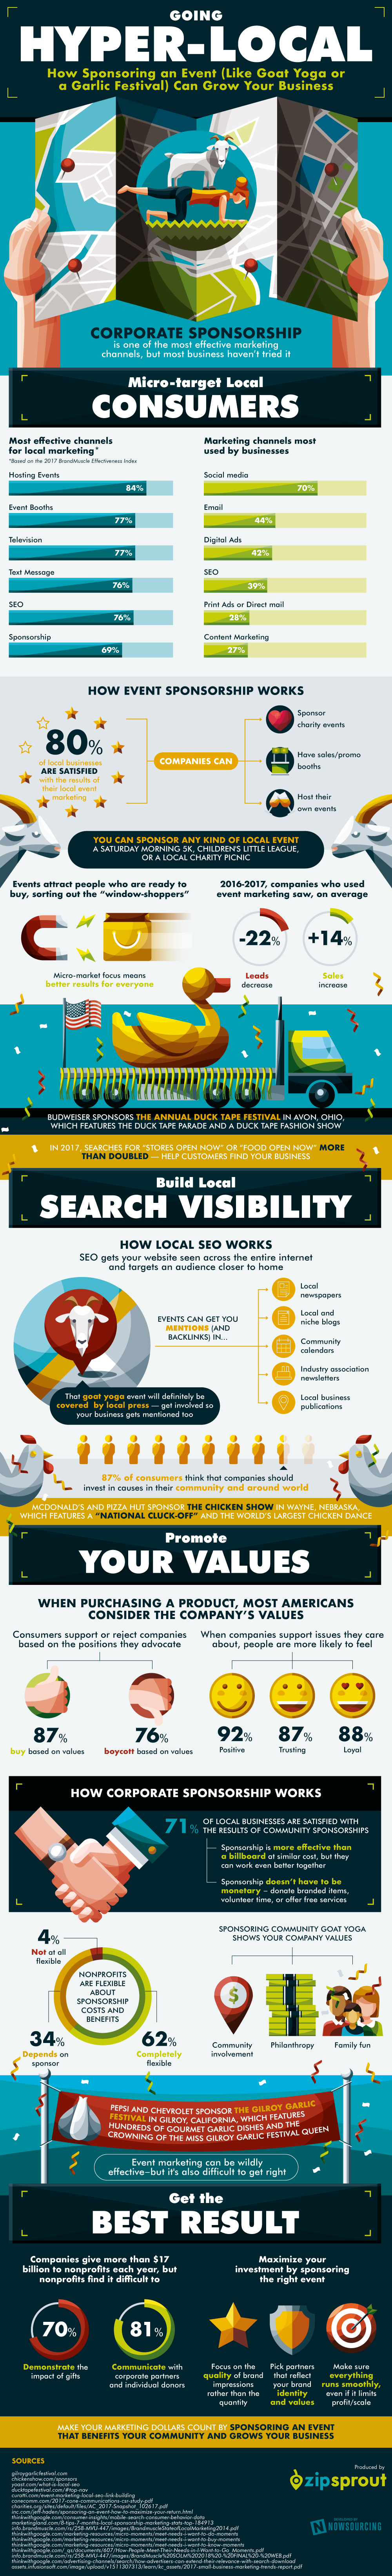 How Sponsoring Local Events Can Boost Your Business [Infographic]